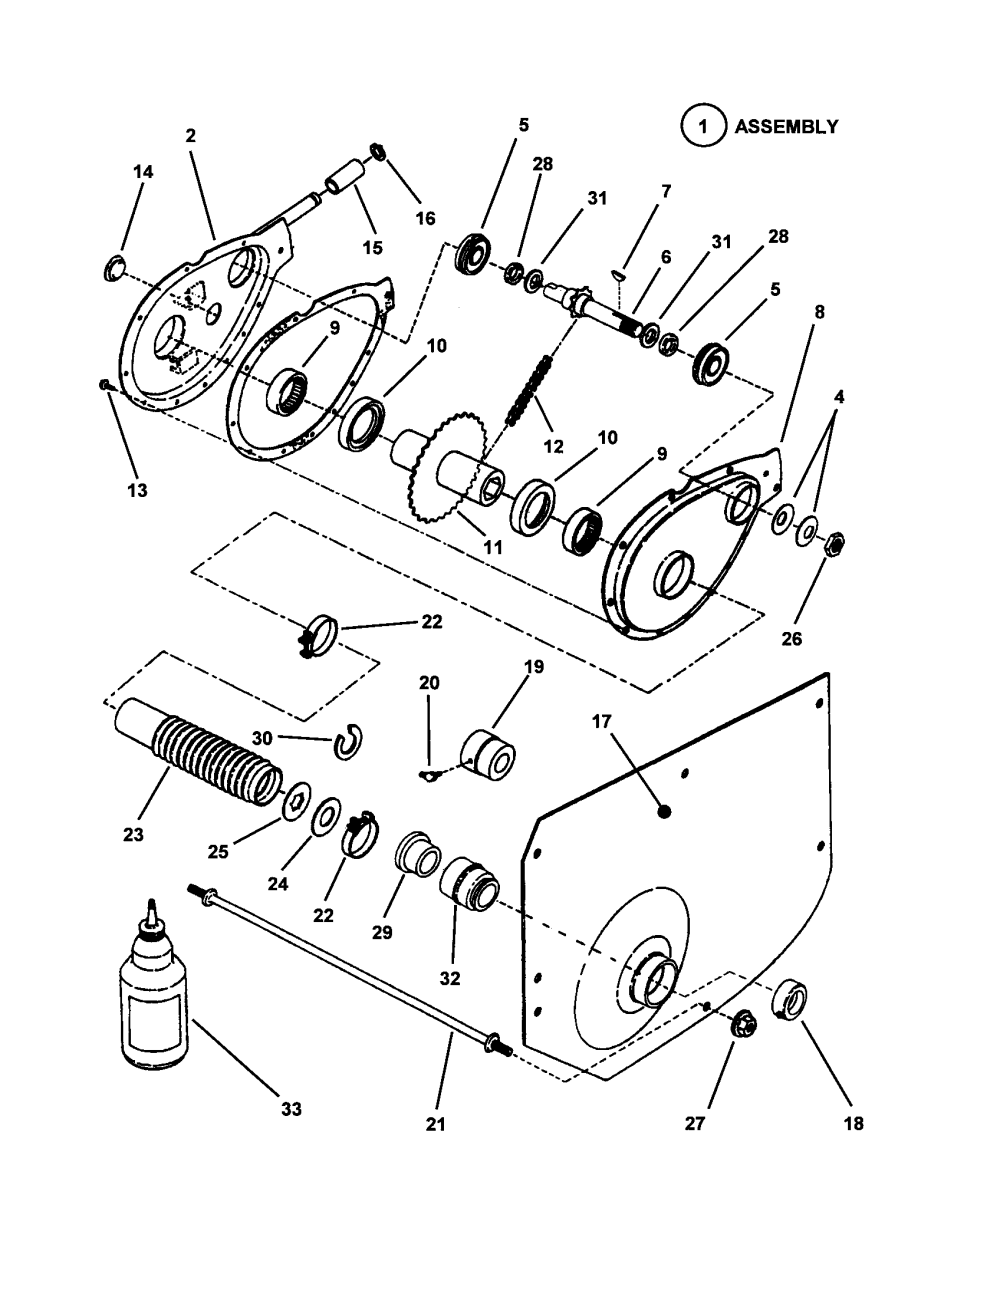 medium resolution of lawn mower engine wiring diagram in addition 1503500 further snapper rear engine riding mower series 23